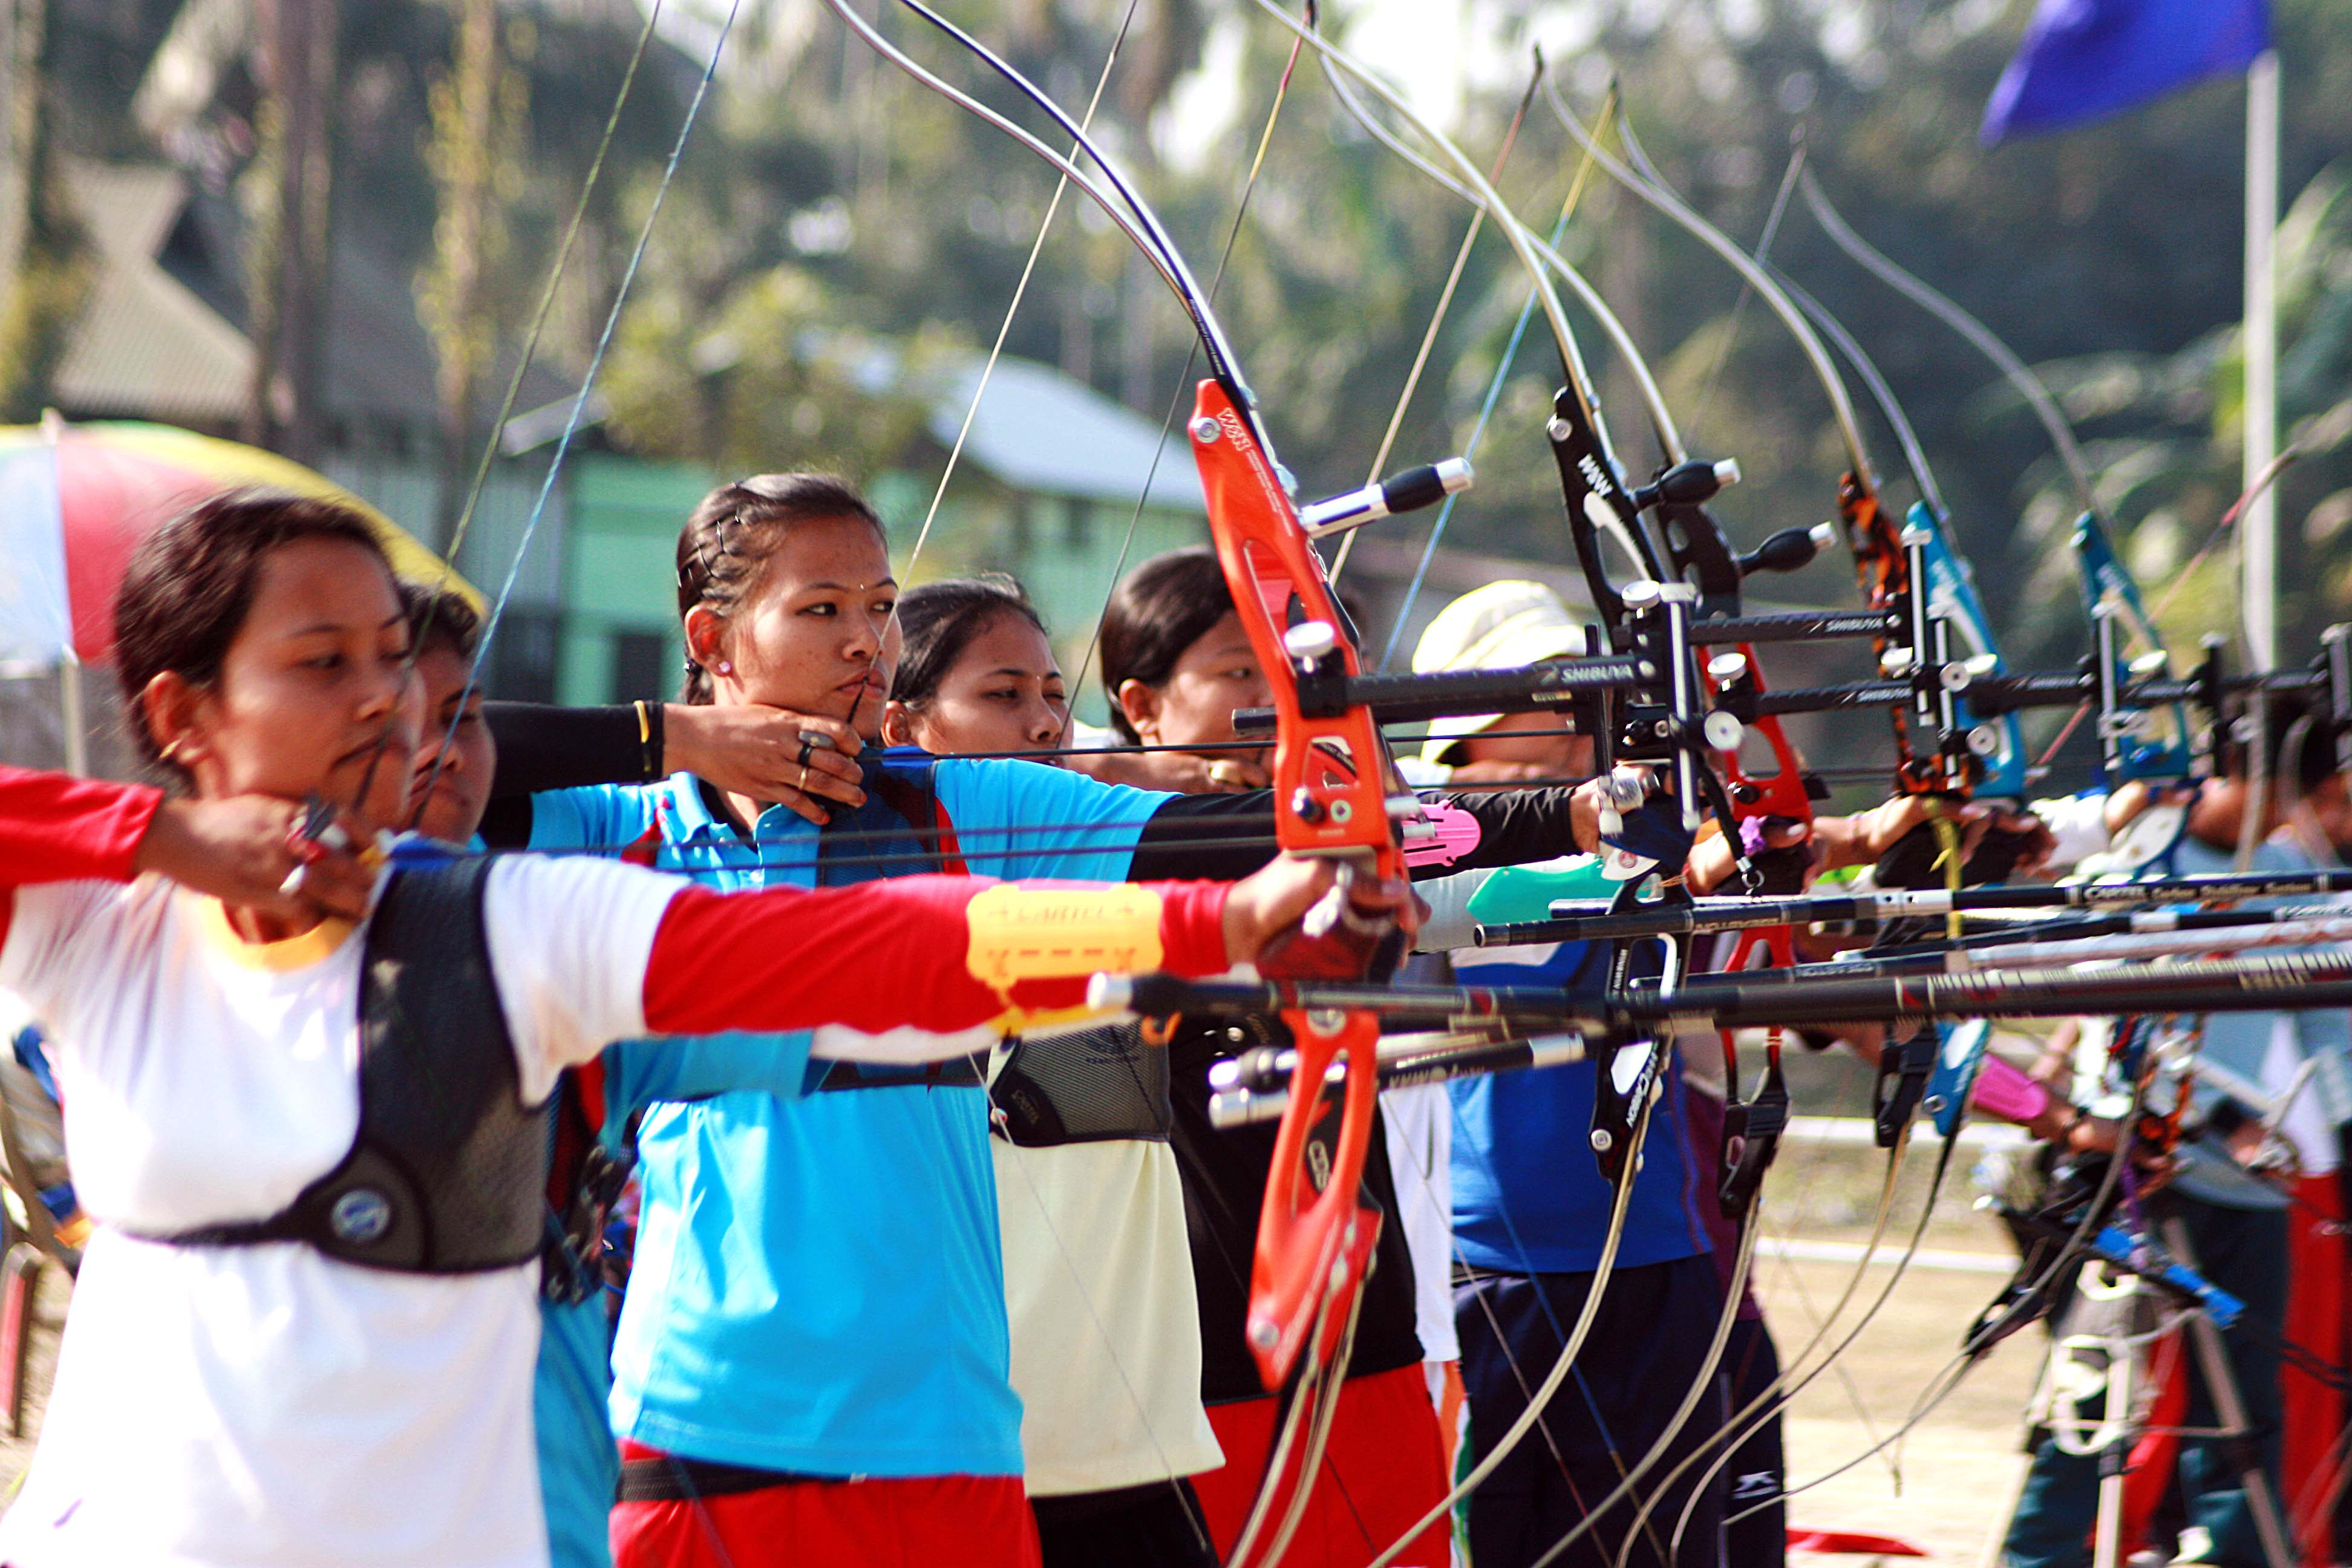 NAGAON, 08 JAN : Players shoots for the target at 2nd State Games 2010  in Nagaon, Assam,India on saturday.